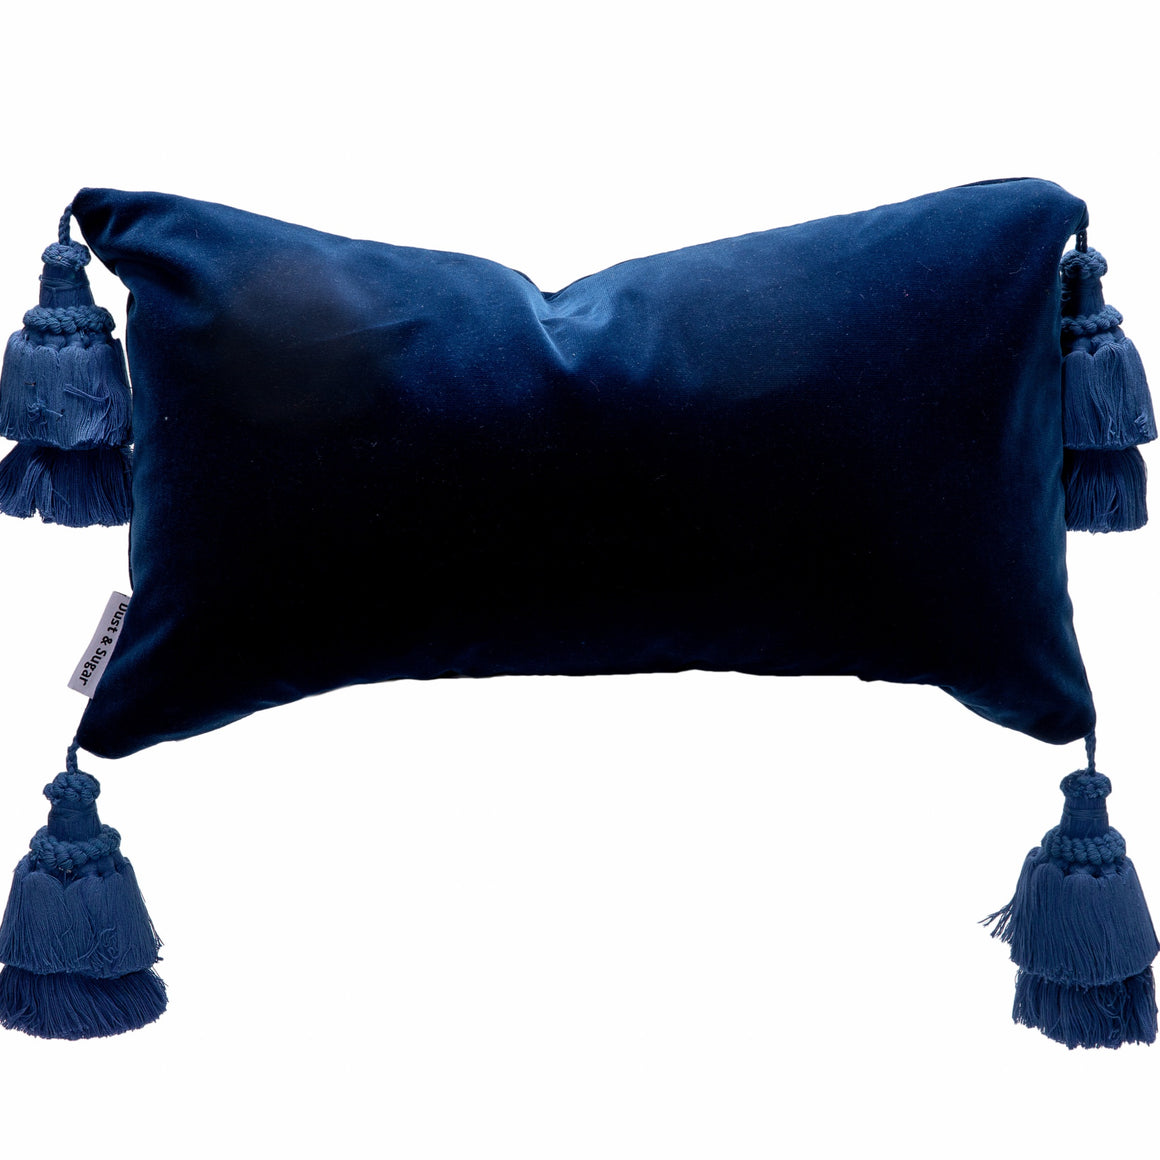 Blue Velvet Pillows With Handmade Tassels